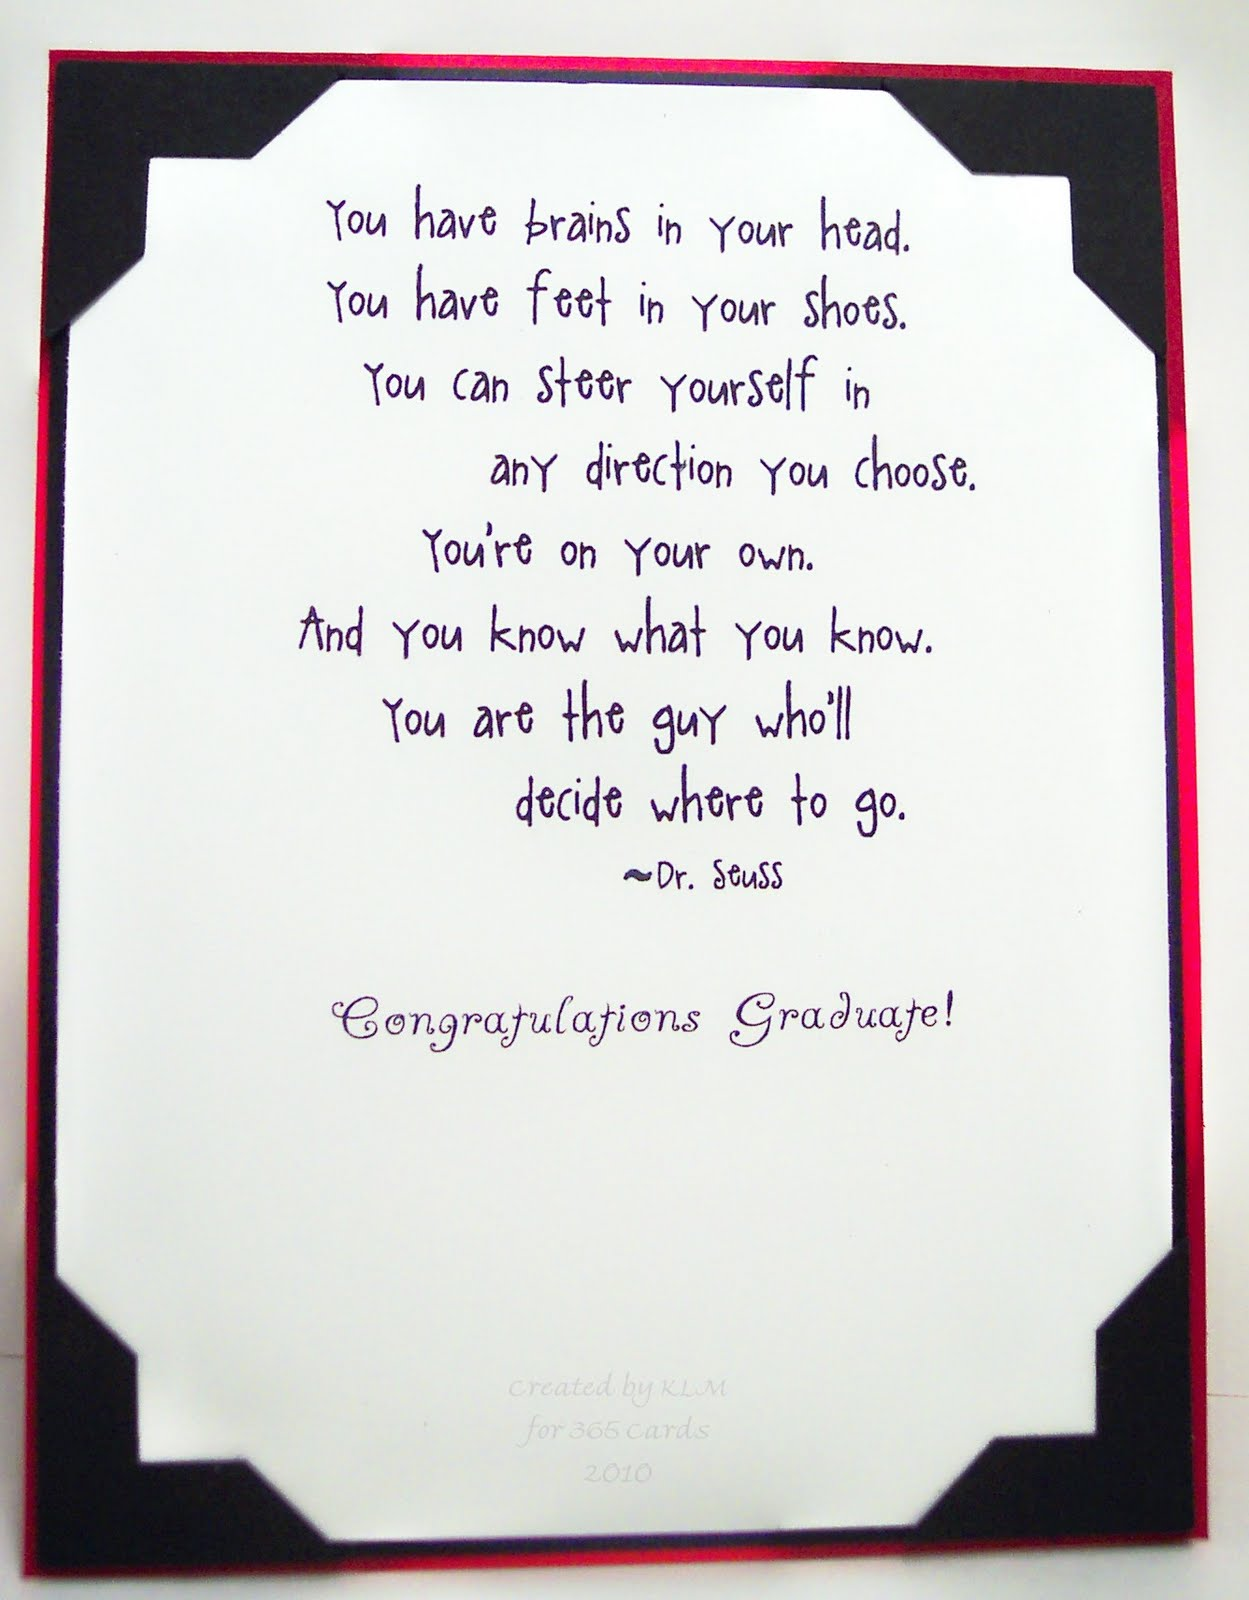 Nursing Graduation Card Sayings thumbnail